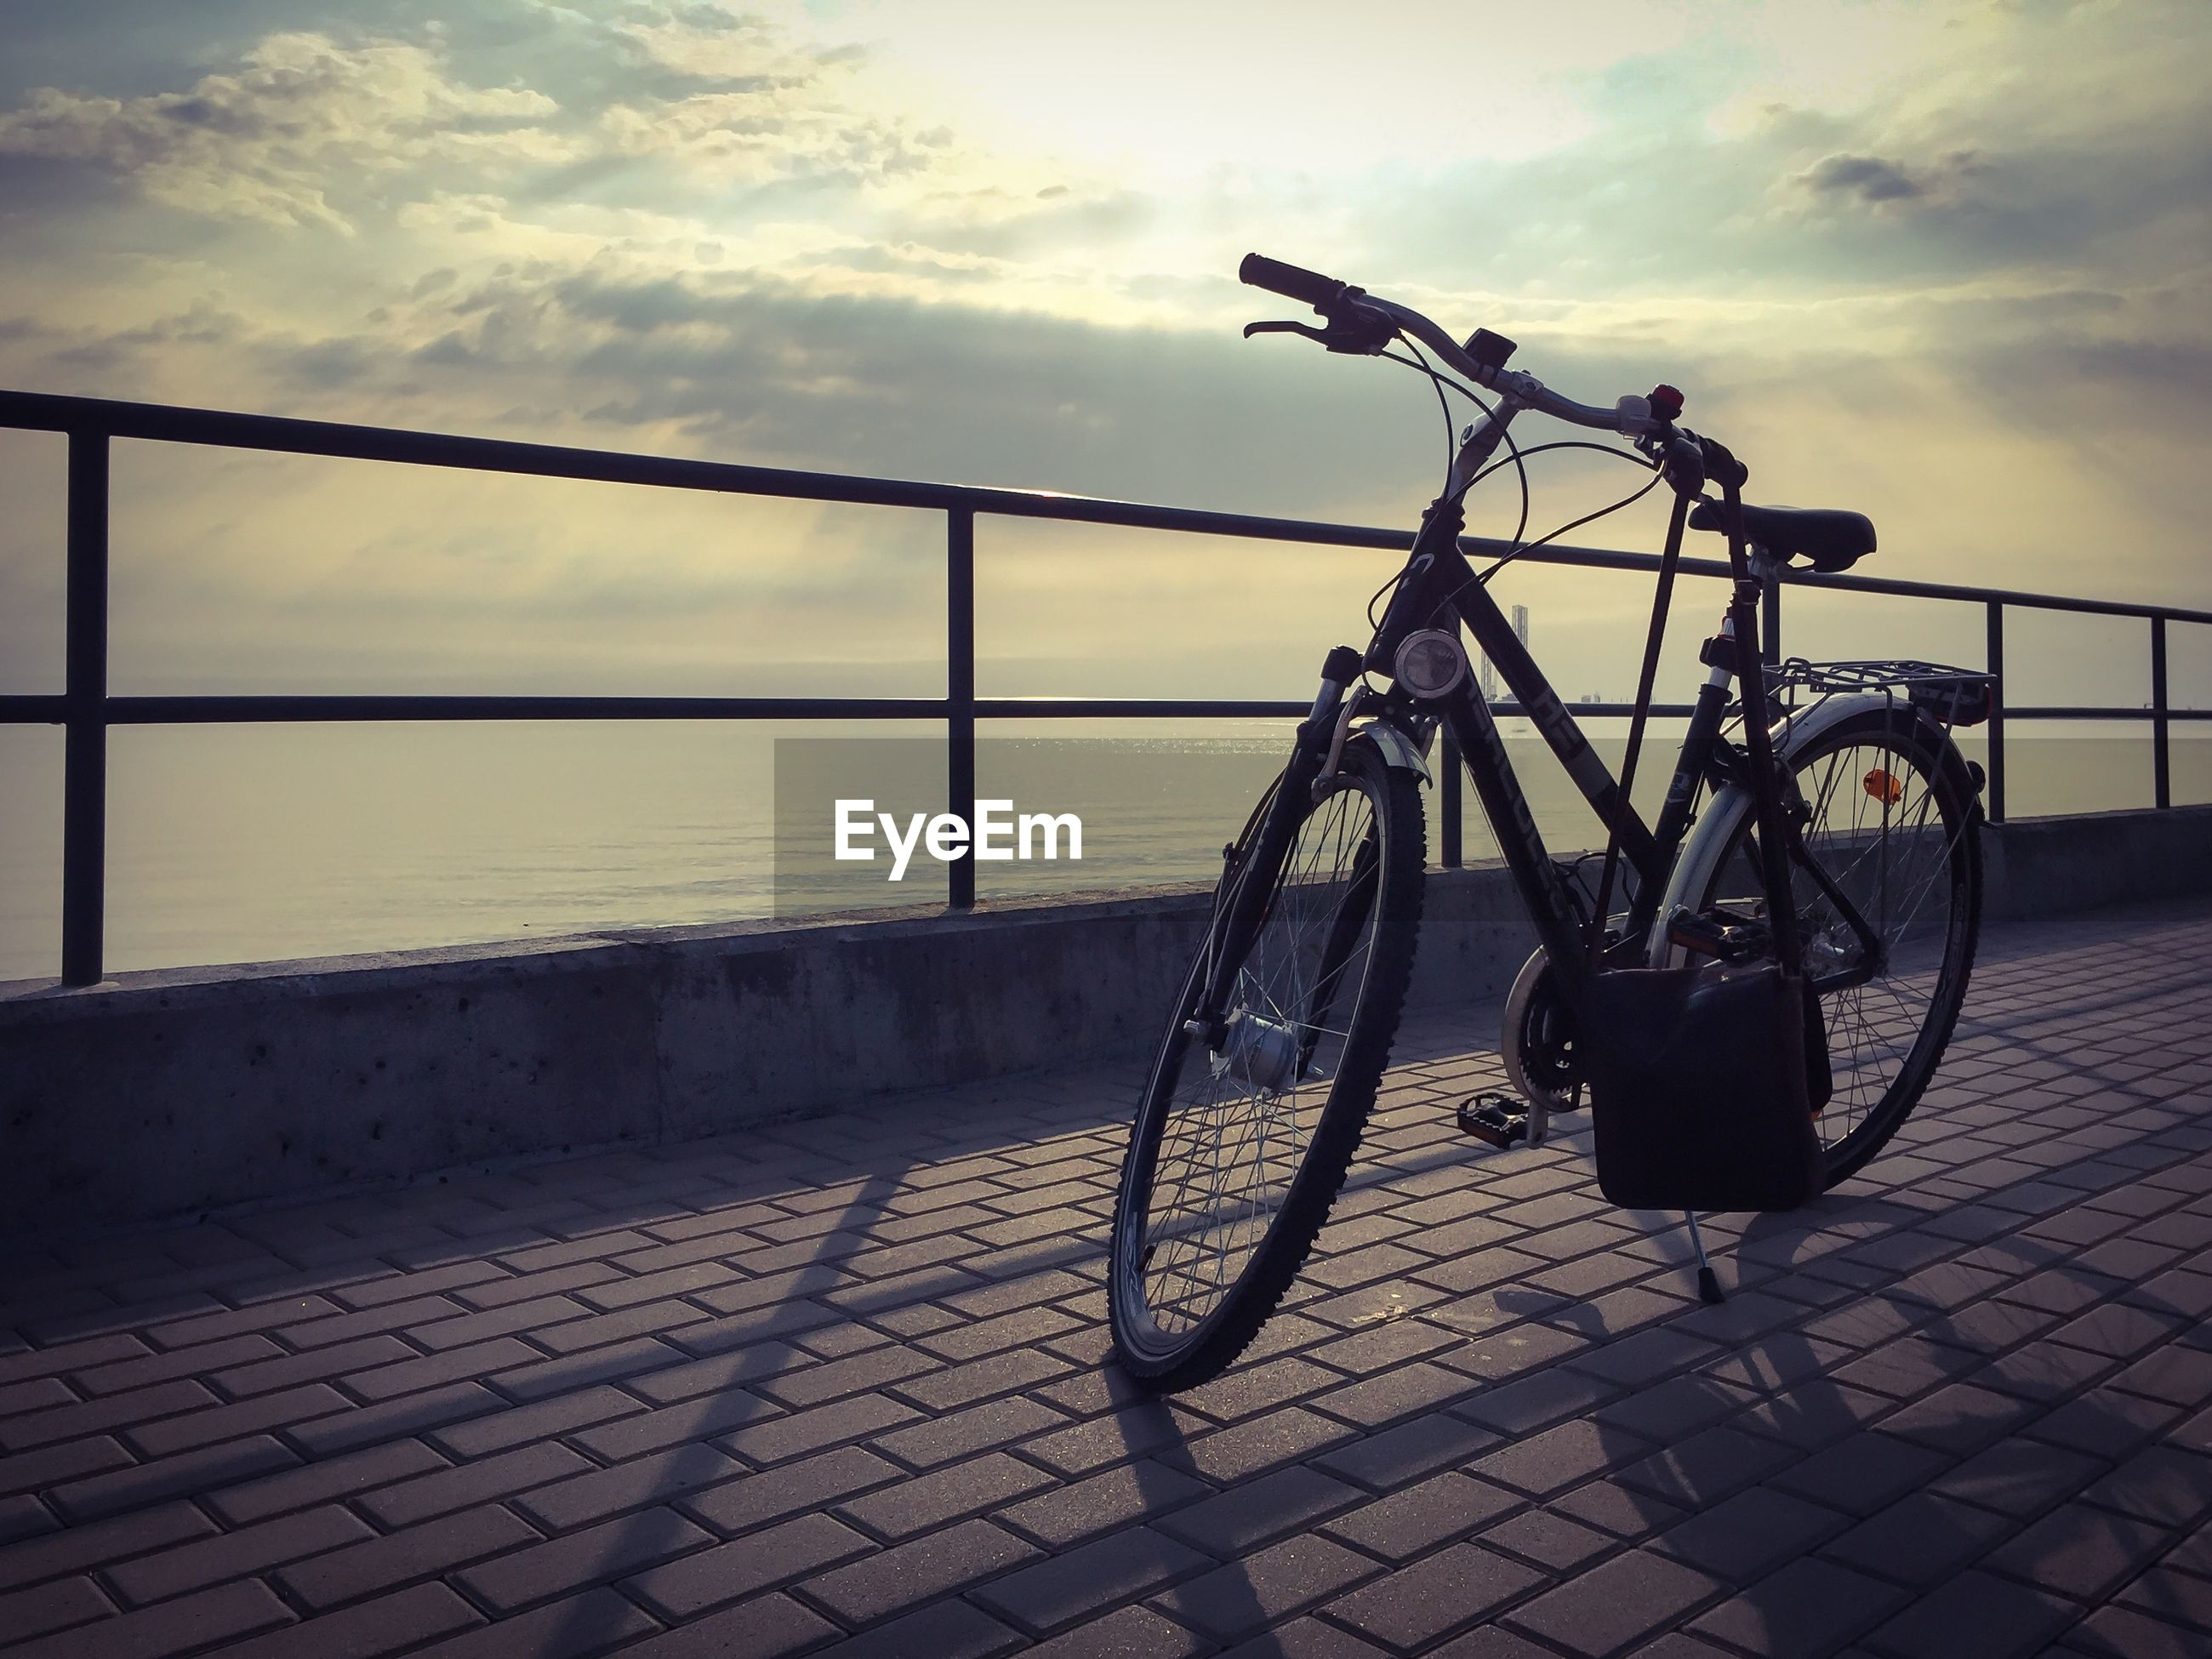 Bicycle parked by railing at seaside